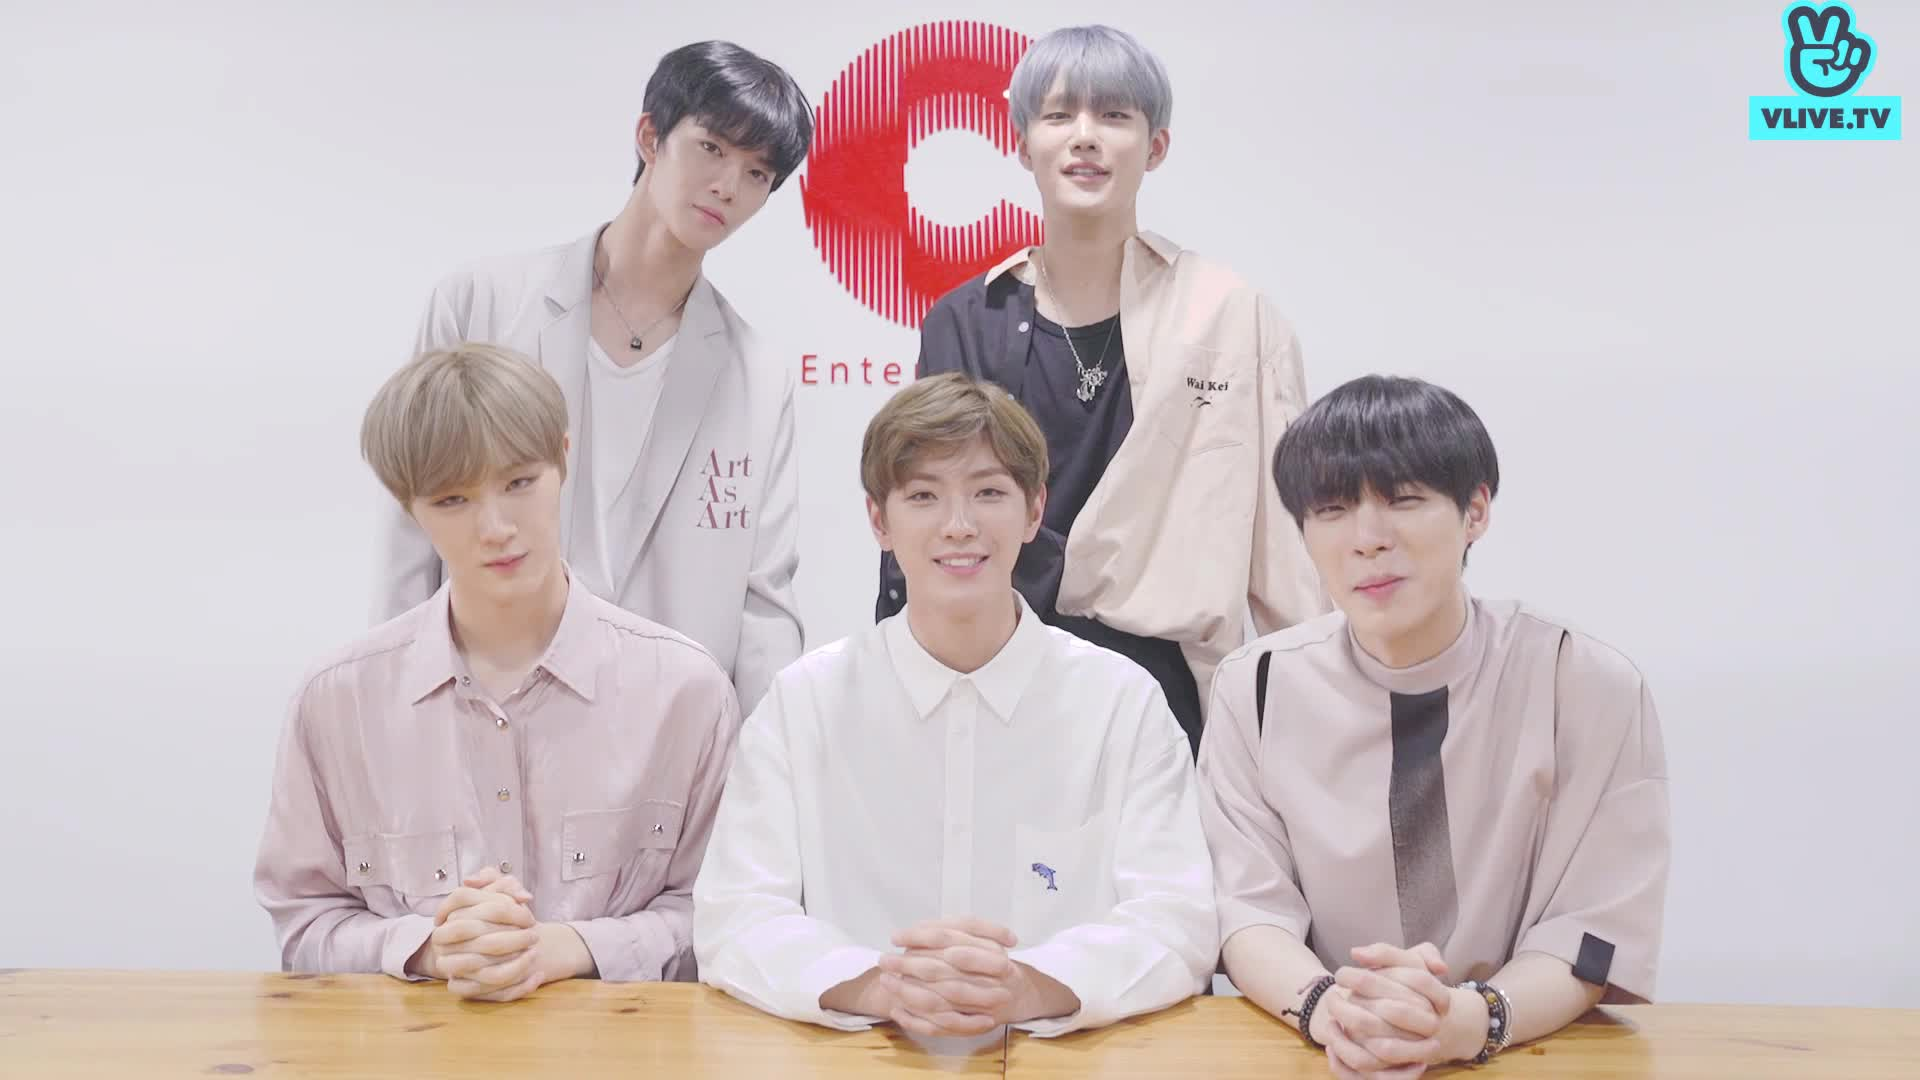 CIX greeting to V FANS!